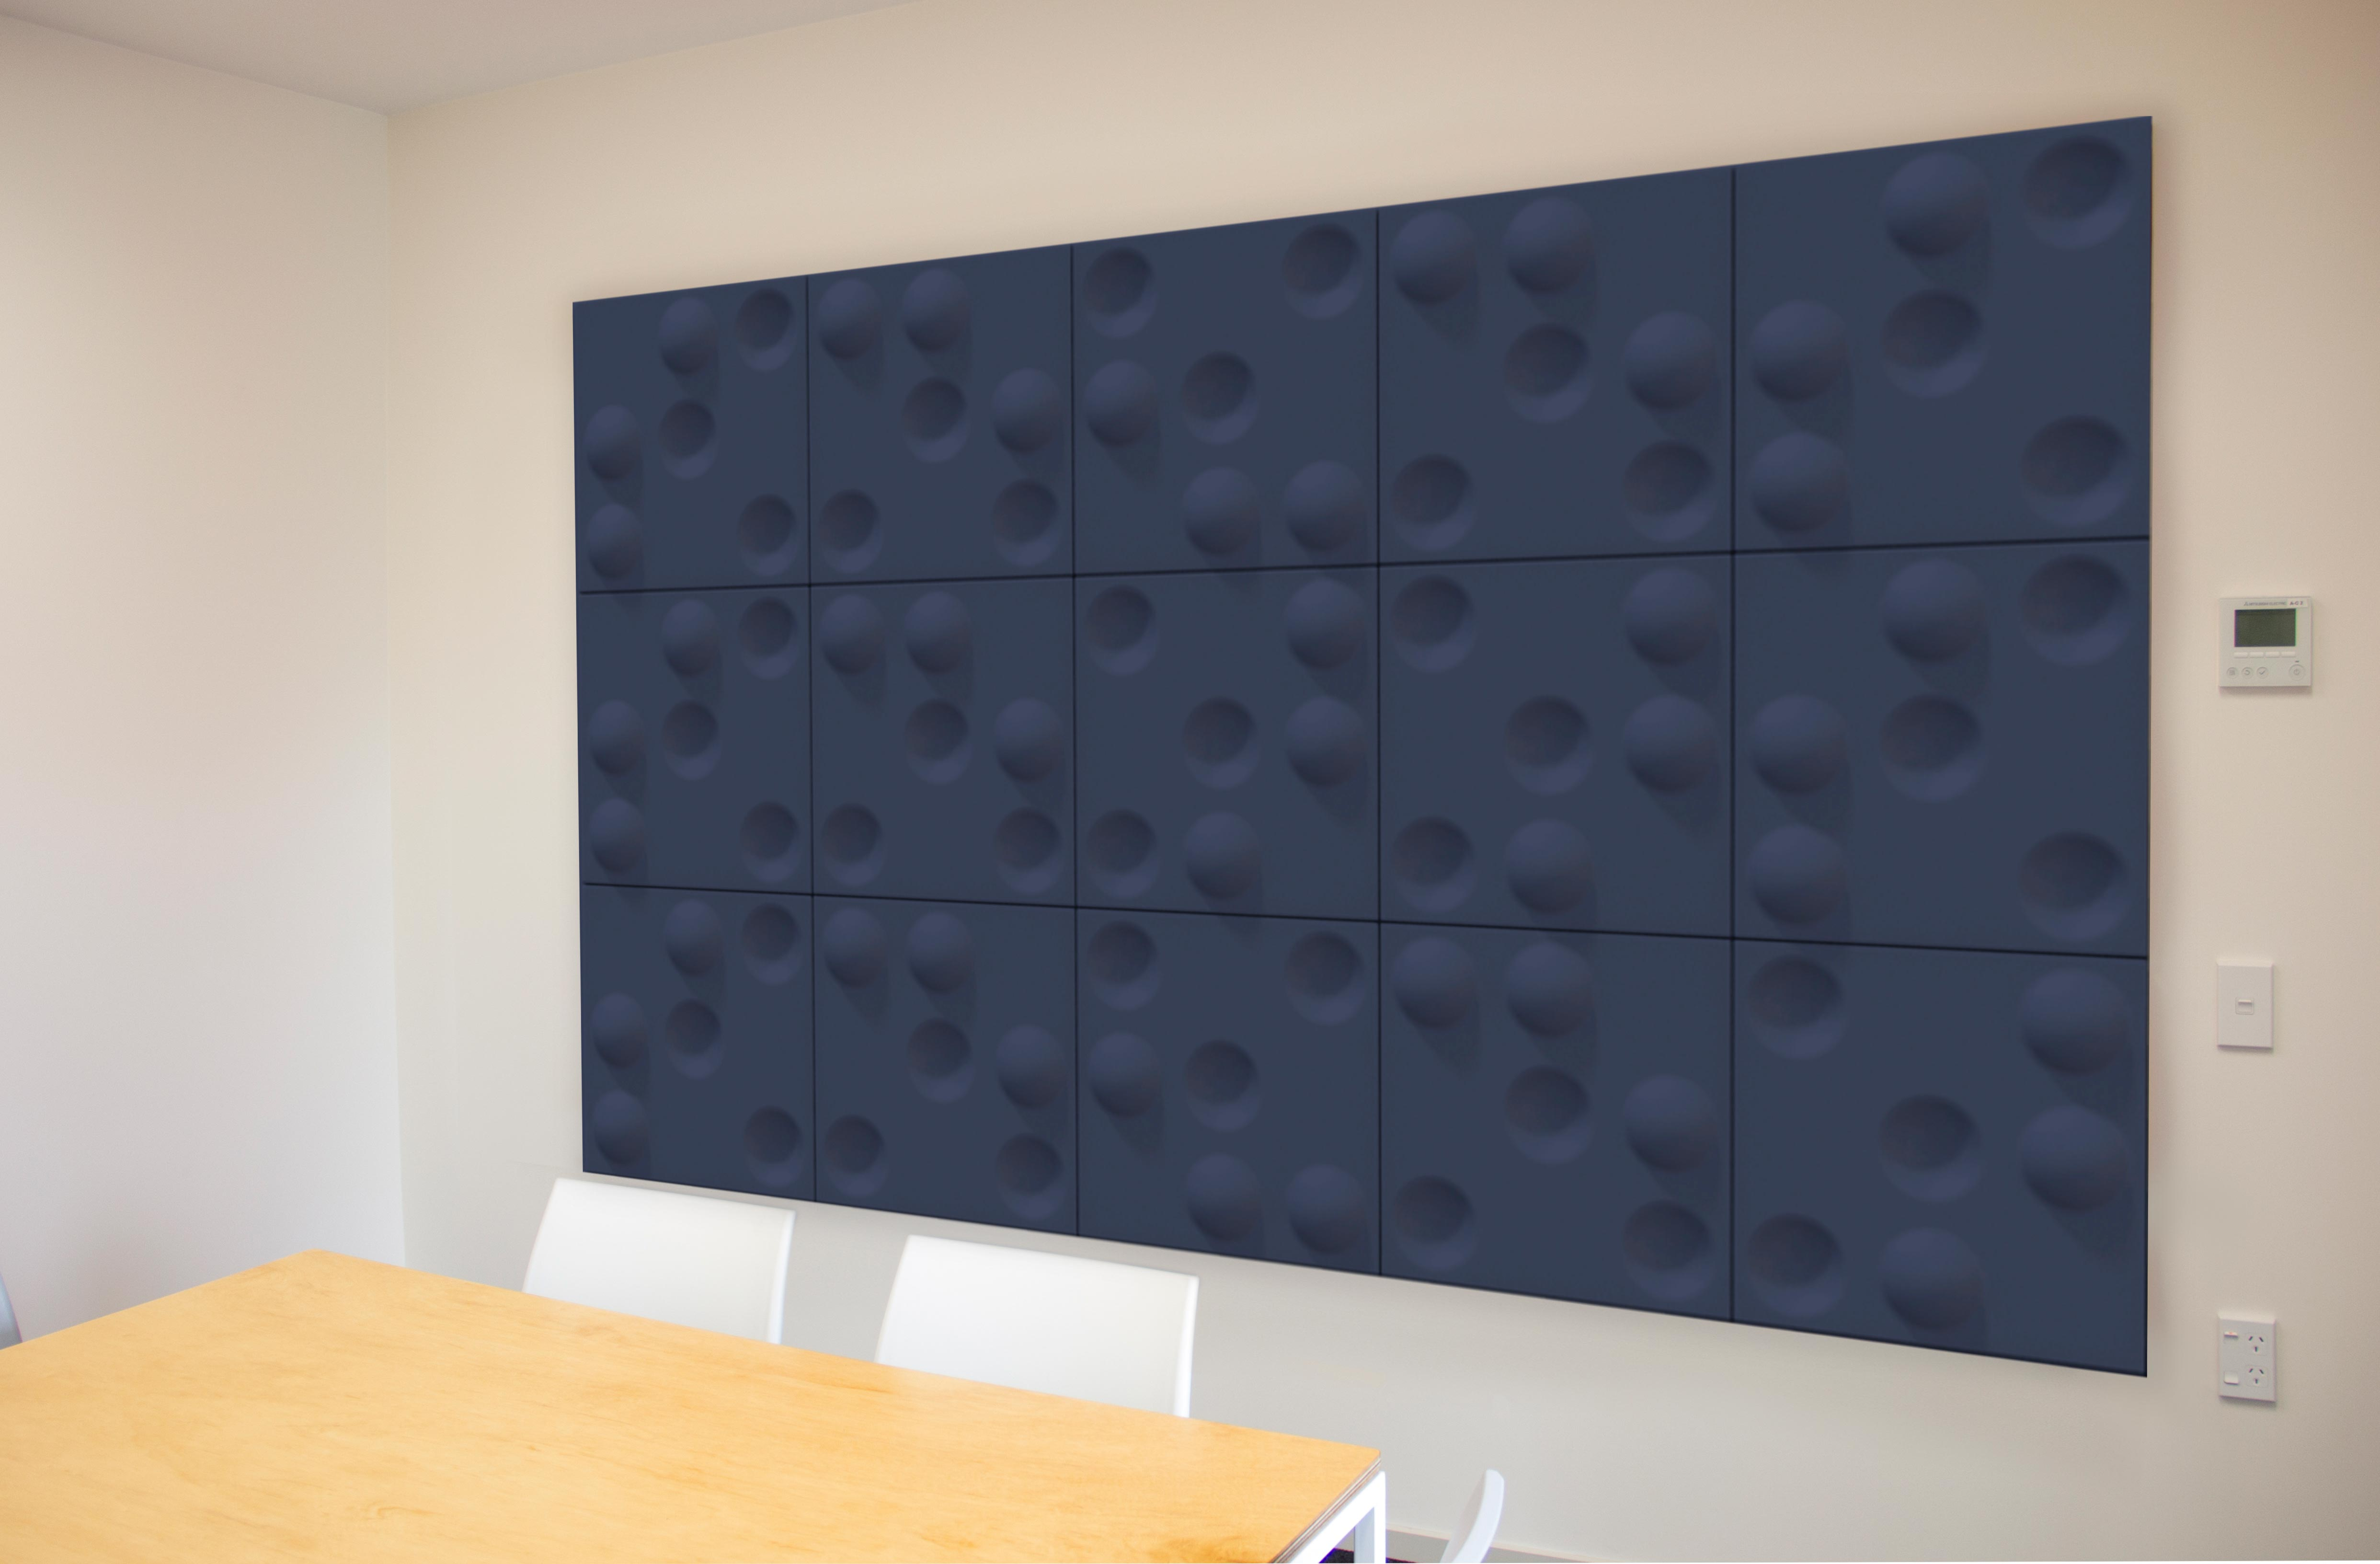 Autex Acoustics Ltd